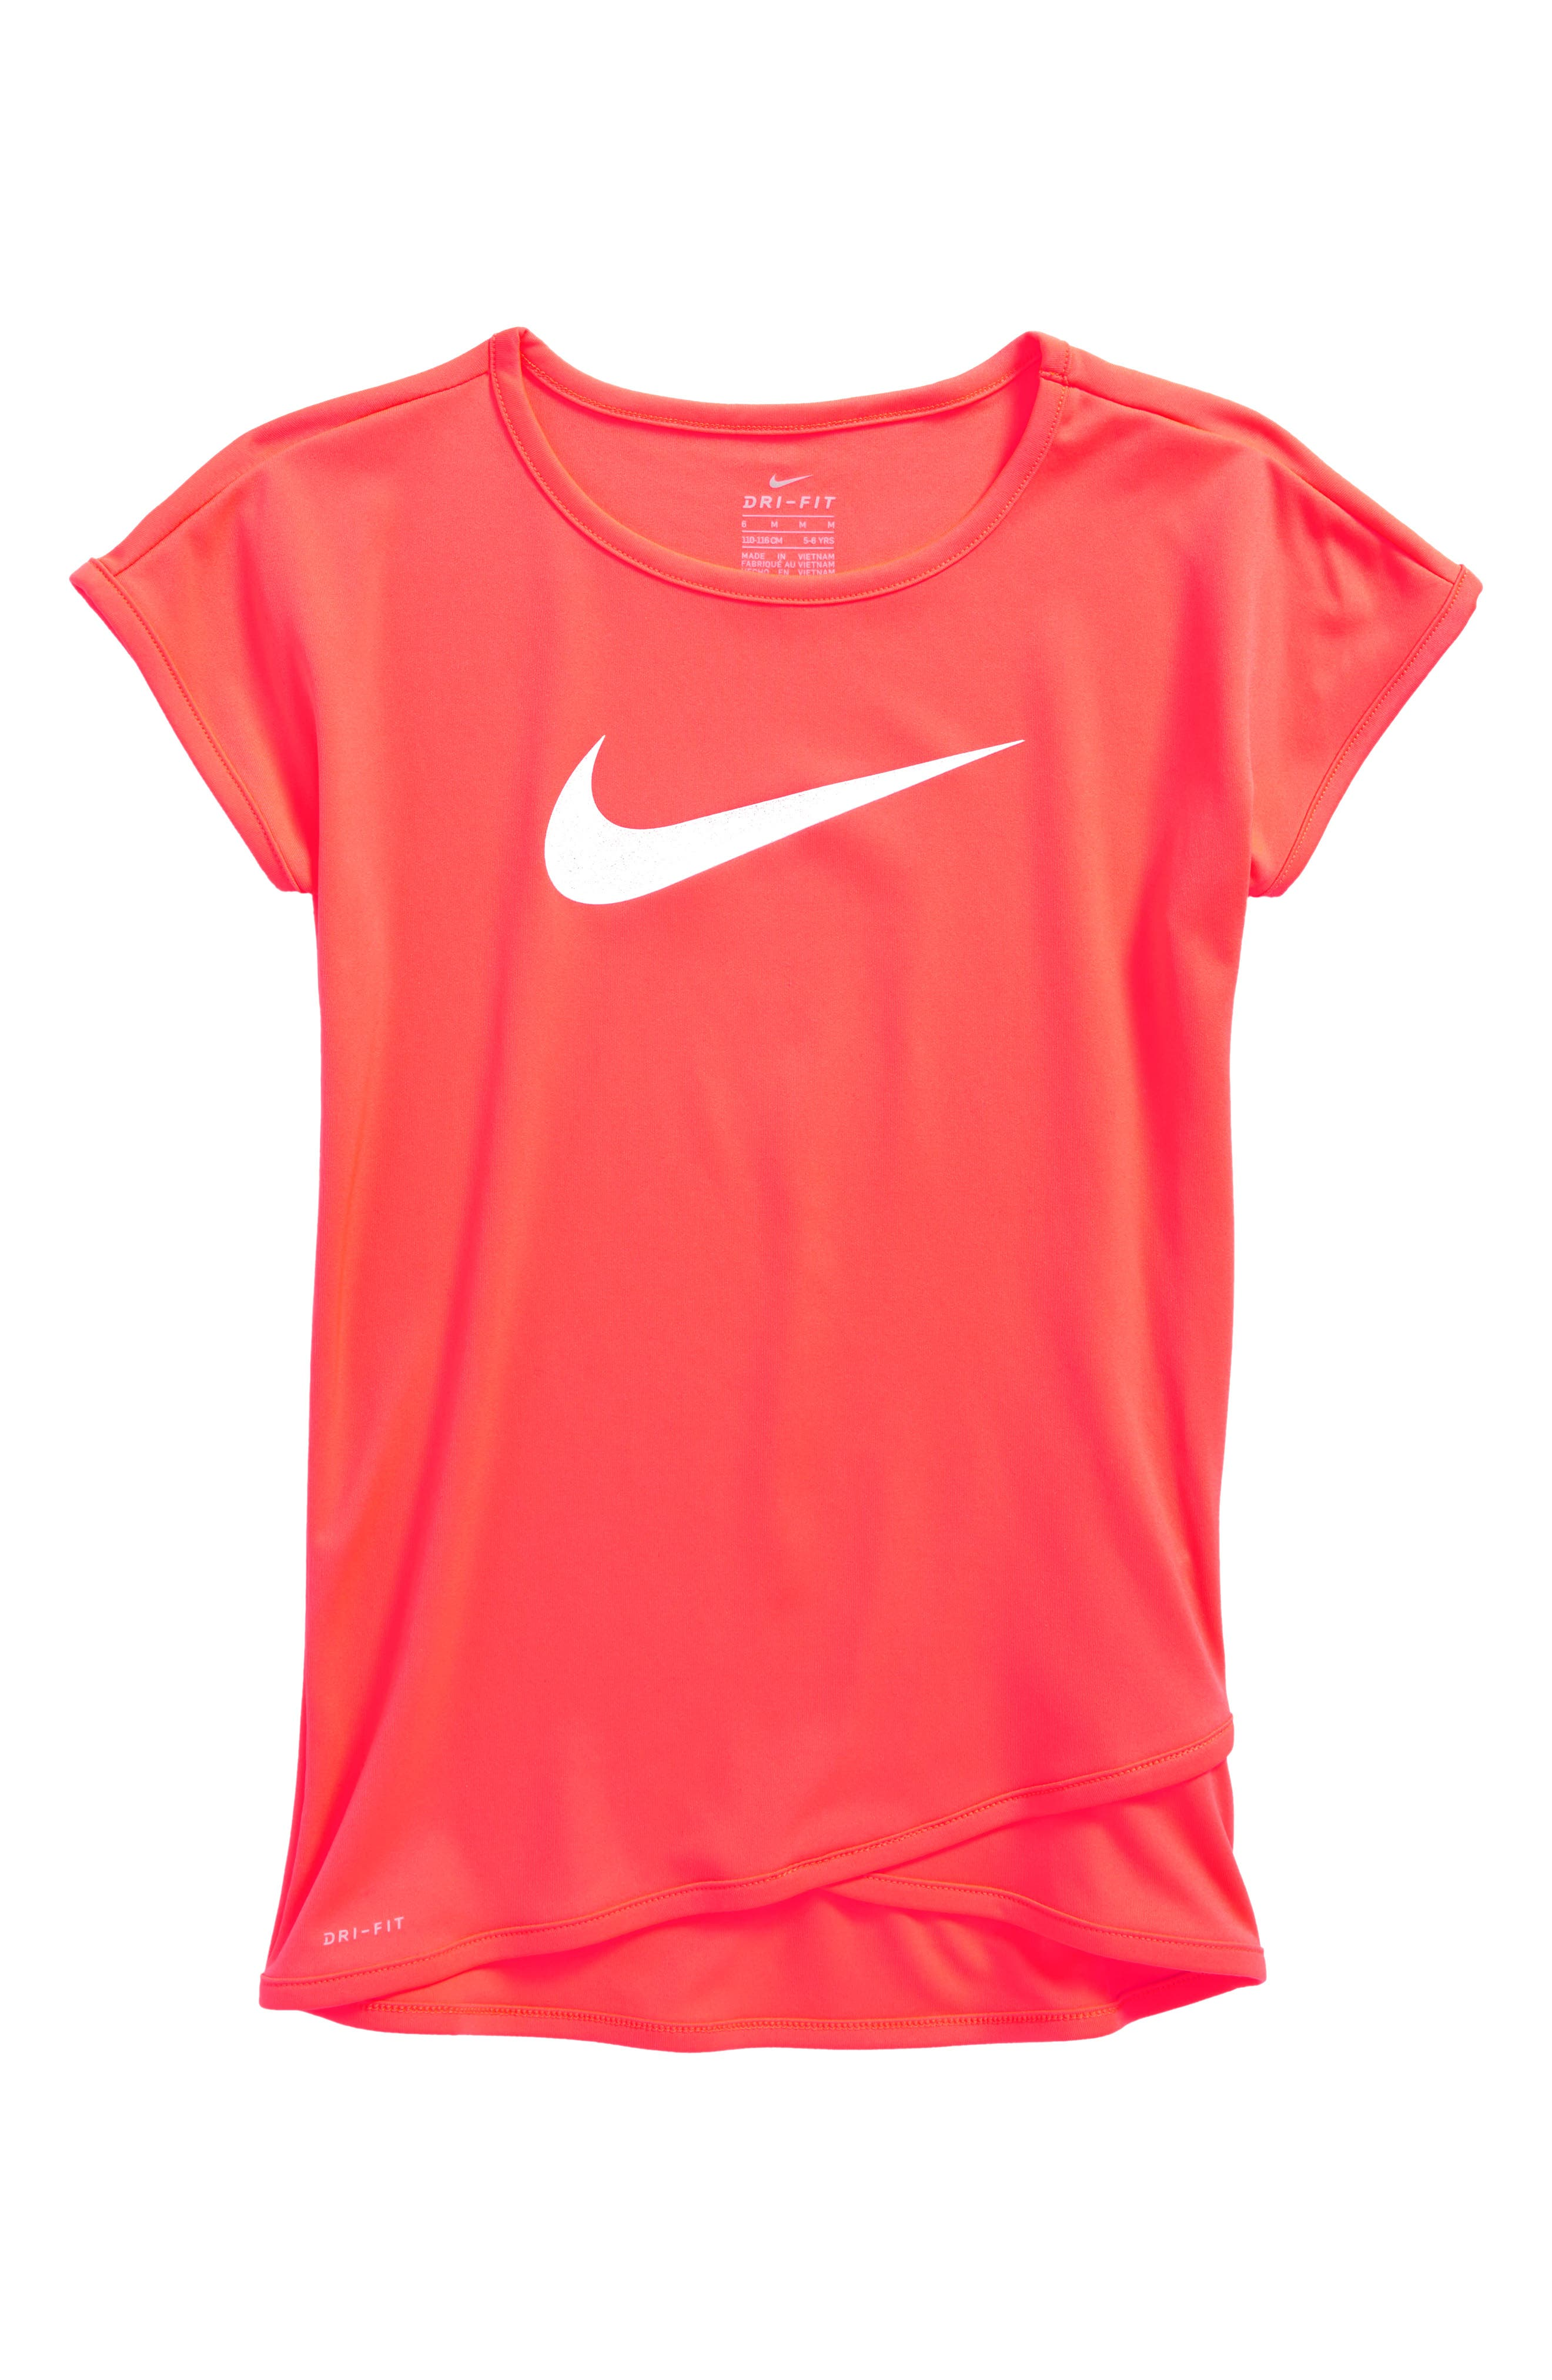 Alternate Image 1 Selected - Nike Dry Swoosh Graphic Tunic (Toddler Girls & Little Girls)